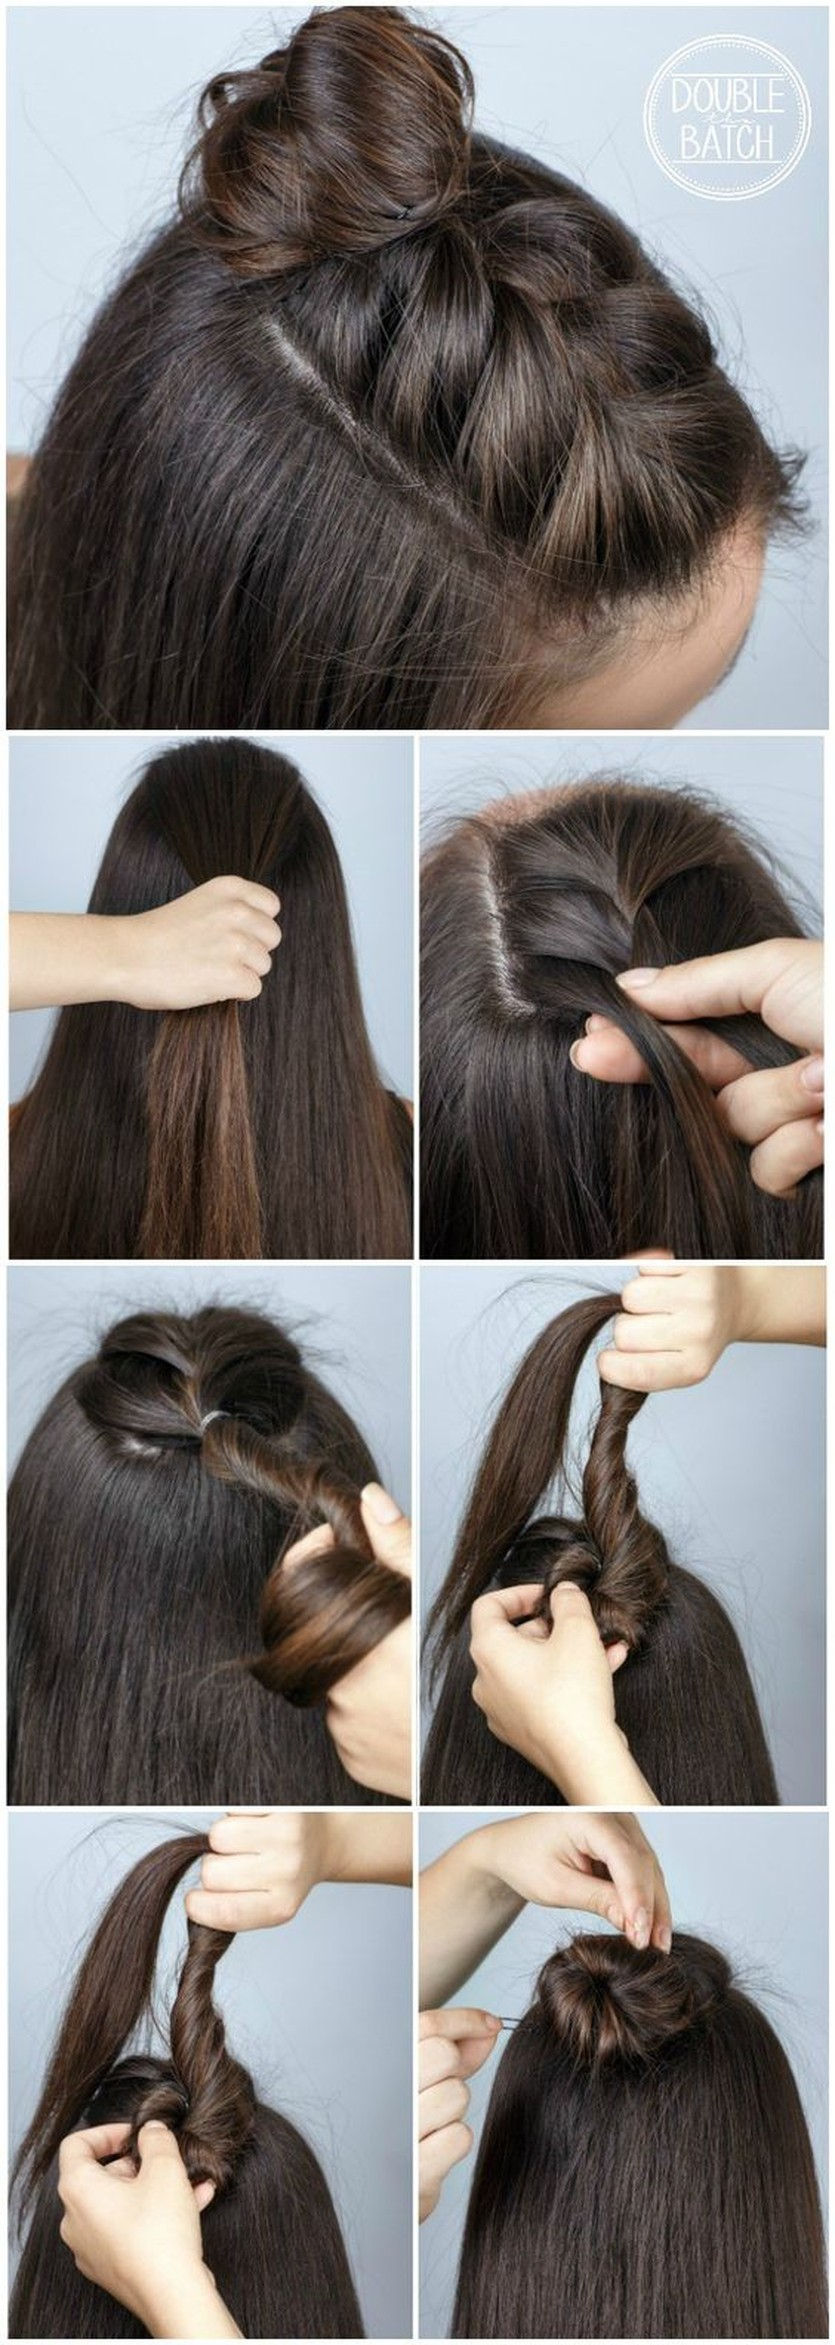 Trend Watch Mohawk Braid Into Top Knot Half Up Hairstyles Circletrest